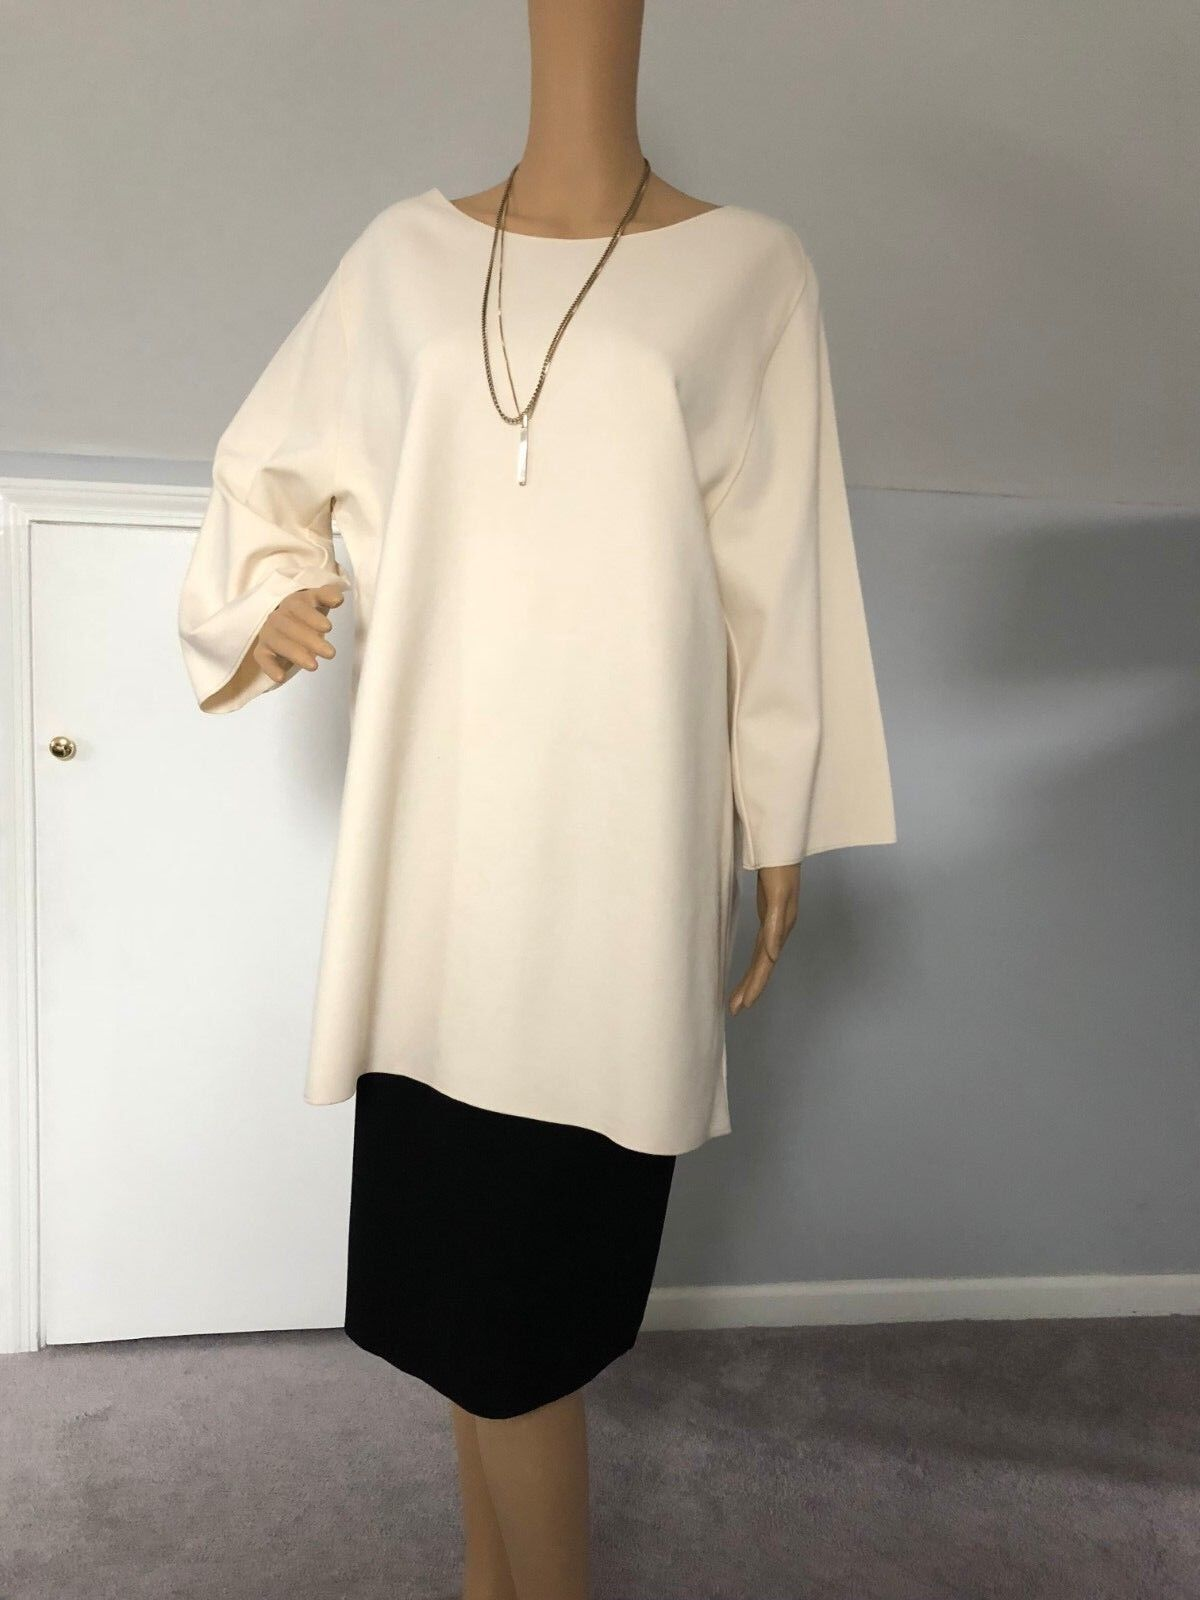 NWOT WEAR IN GOOD HEALTH Eggnog Cream Exposed Seam Tunic Top Woherren sz 3XL